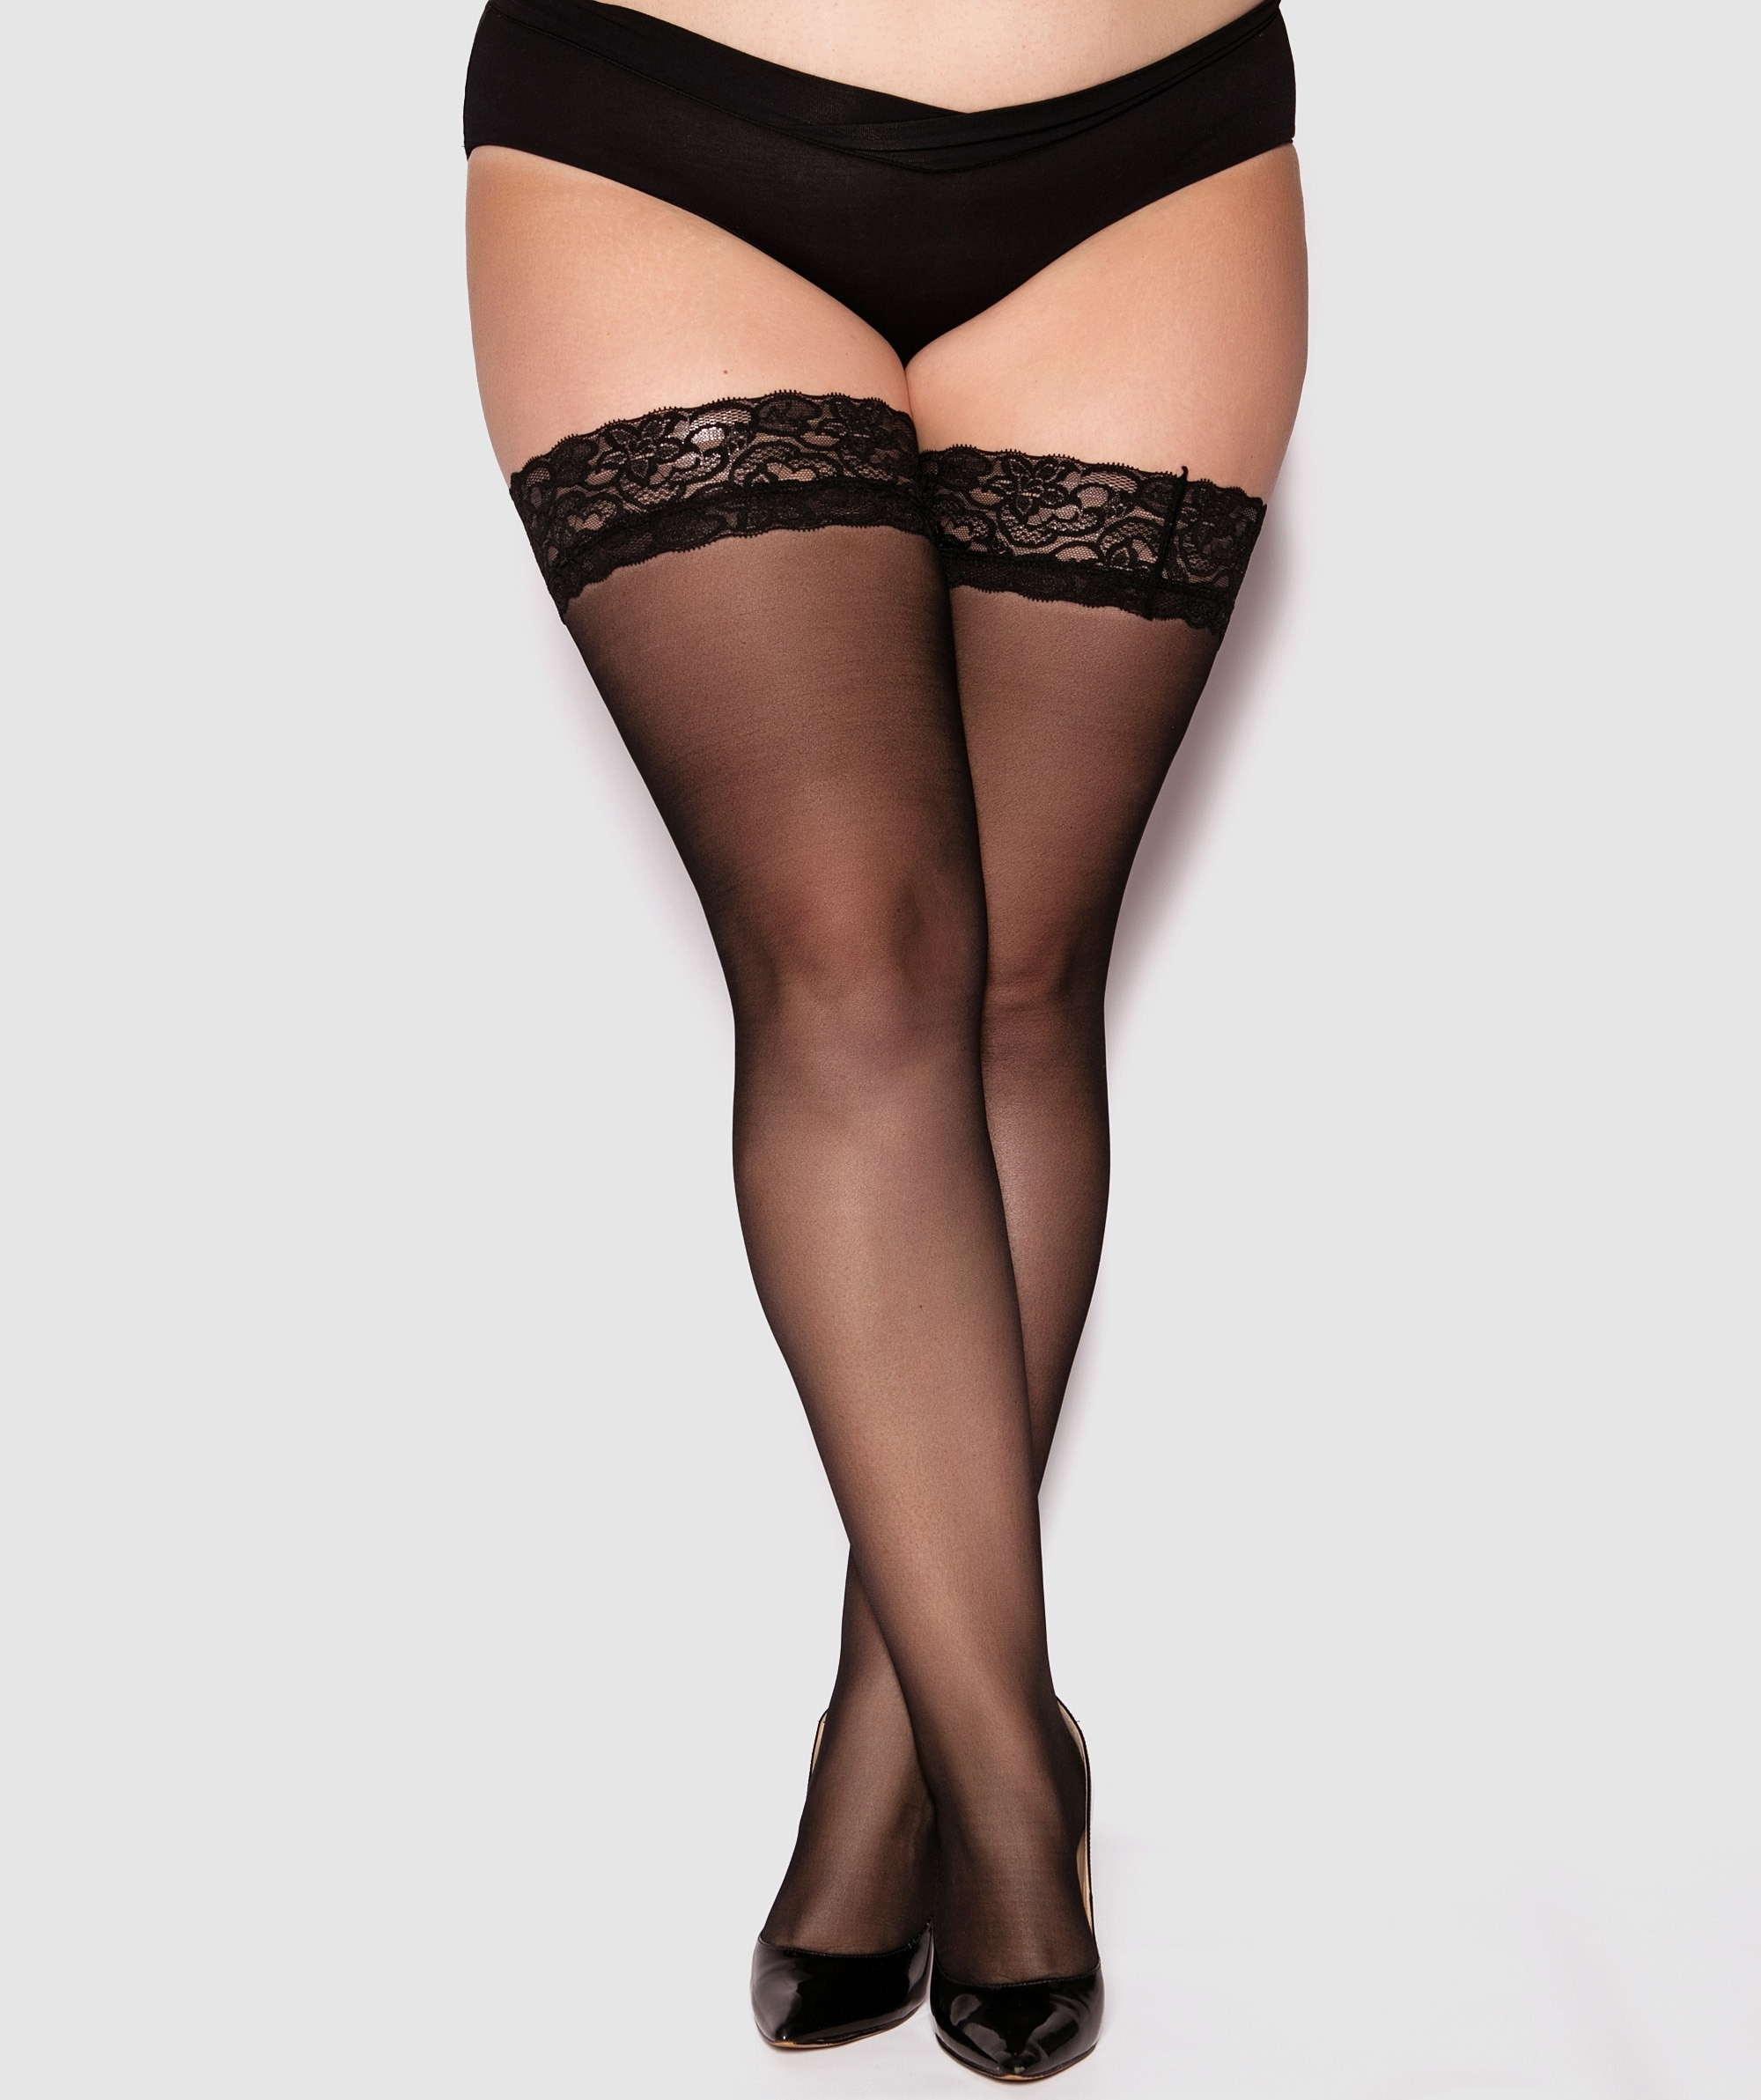 Curvy Lace Top Stay Up Stockings - Black